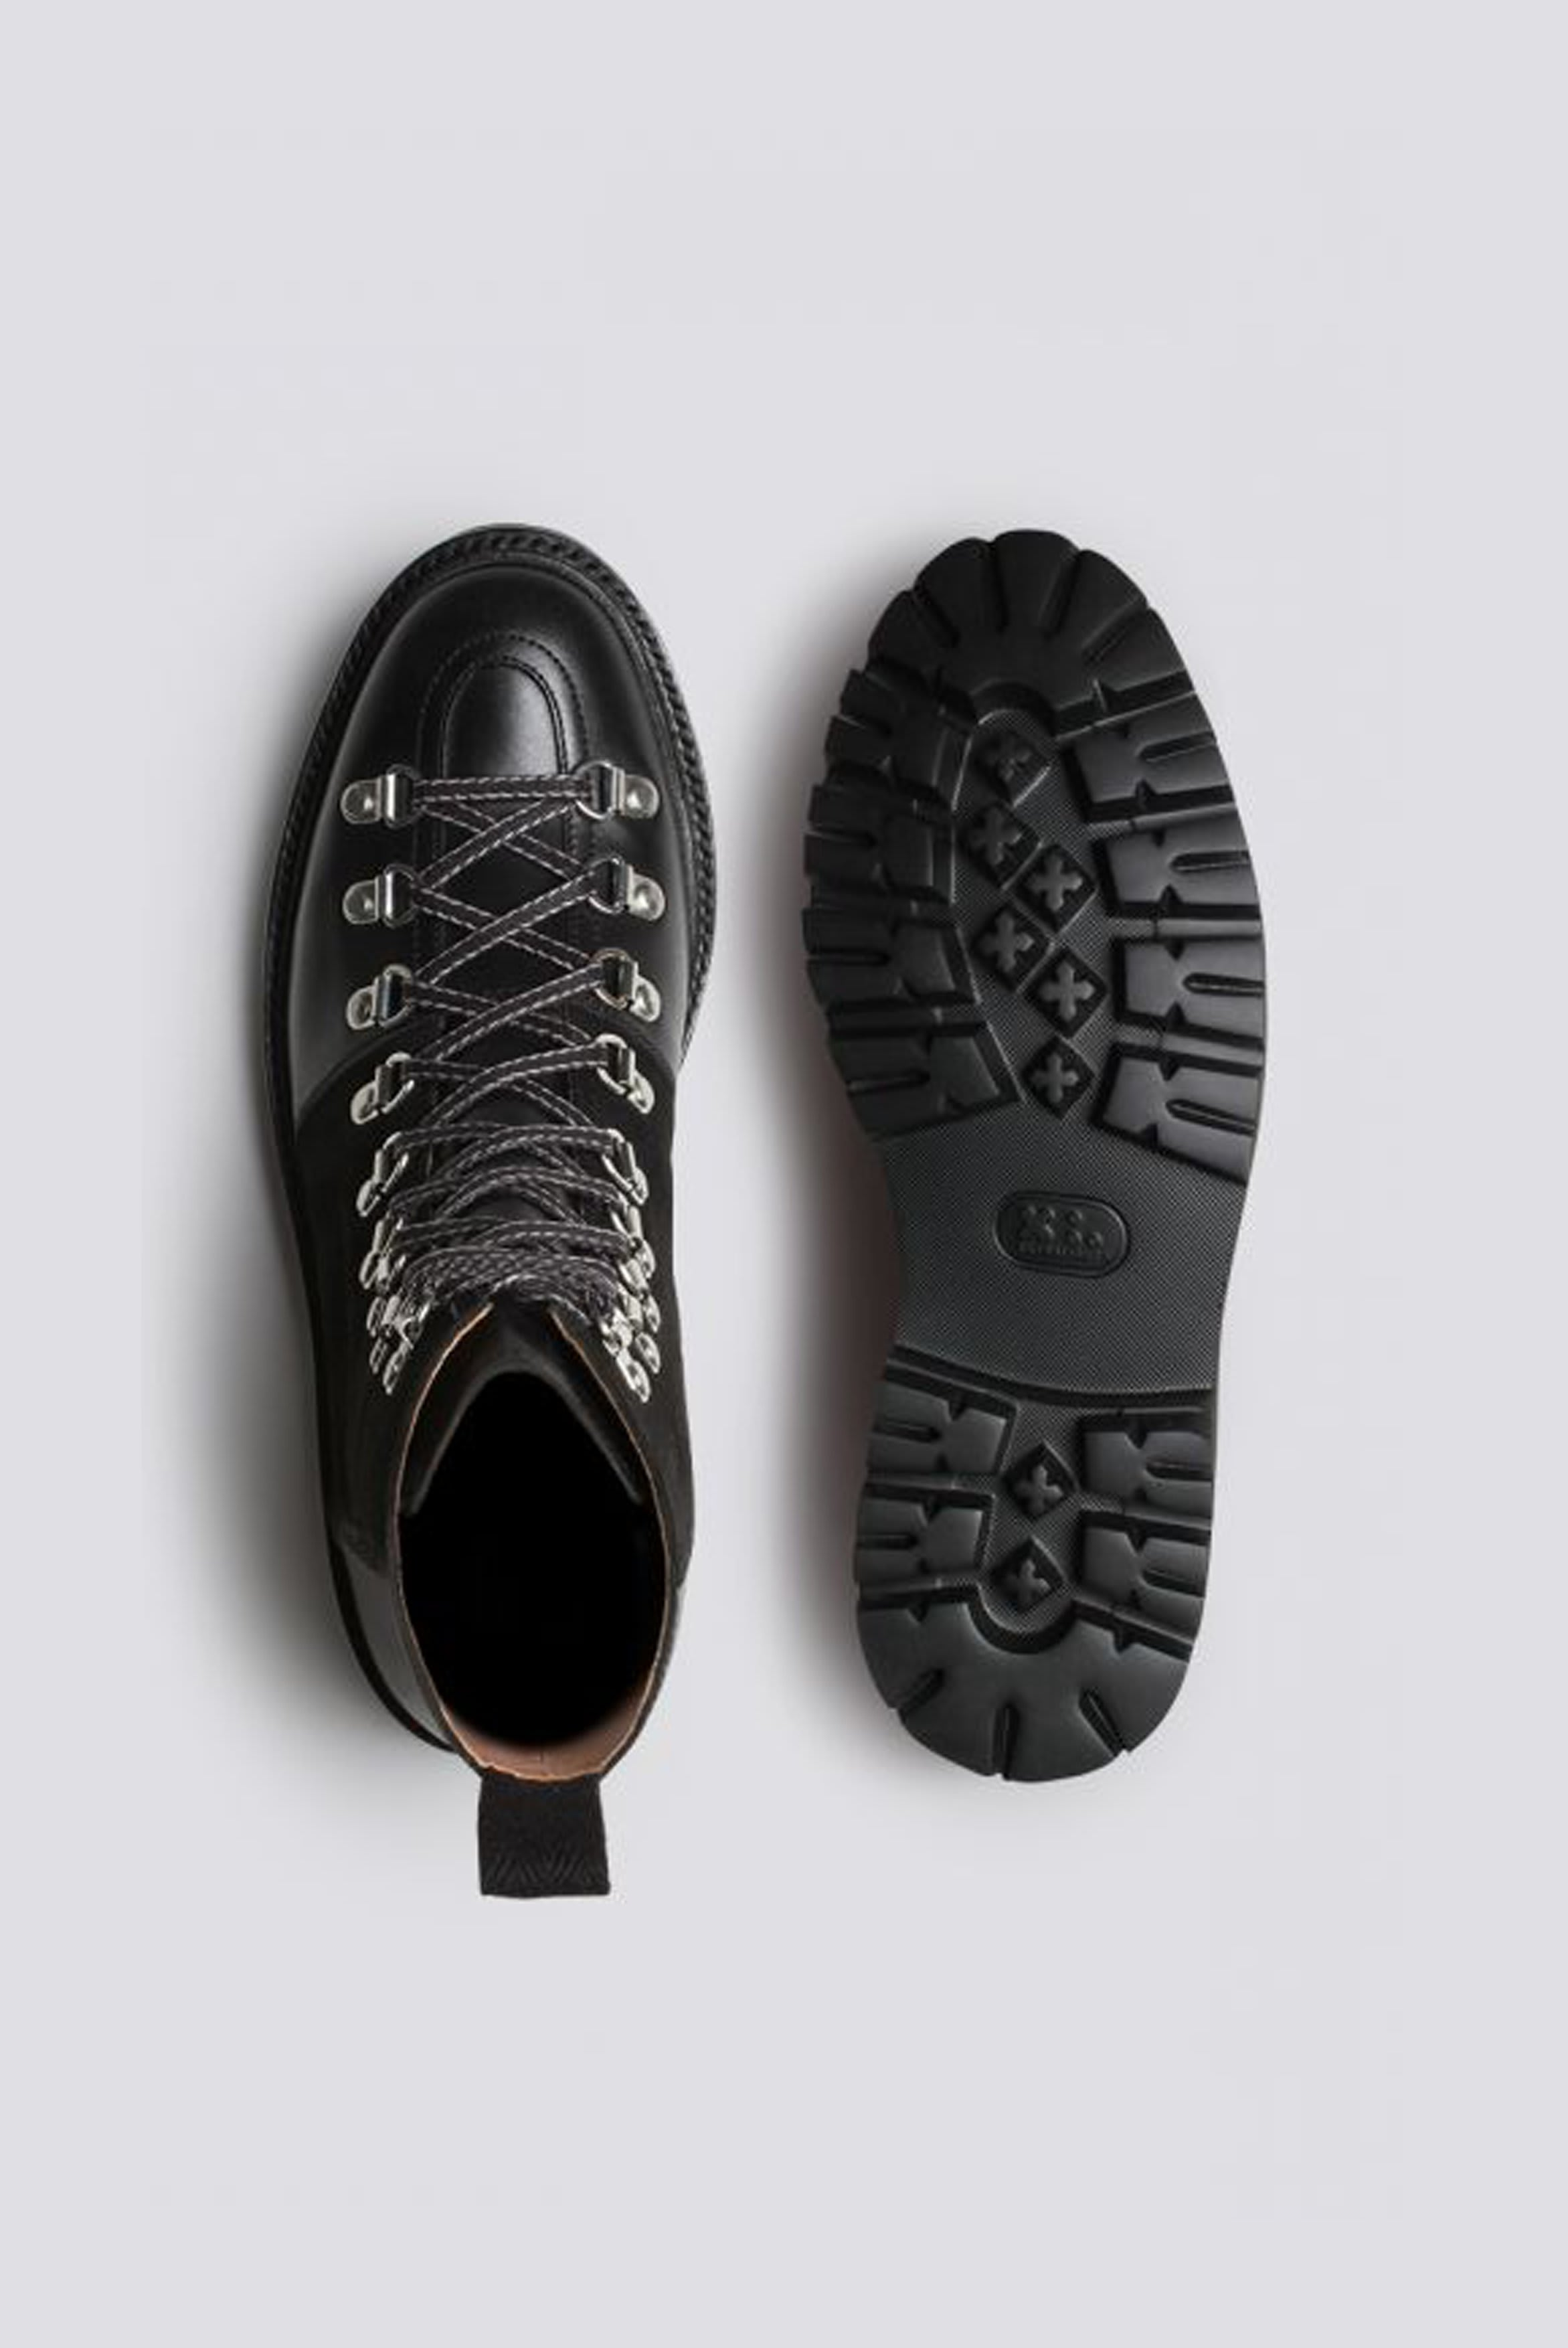 Grenson Nanette Black Leather Suede Hiker Boots